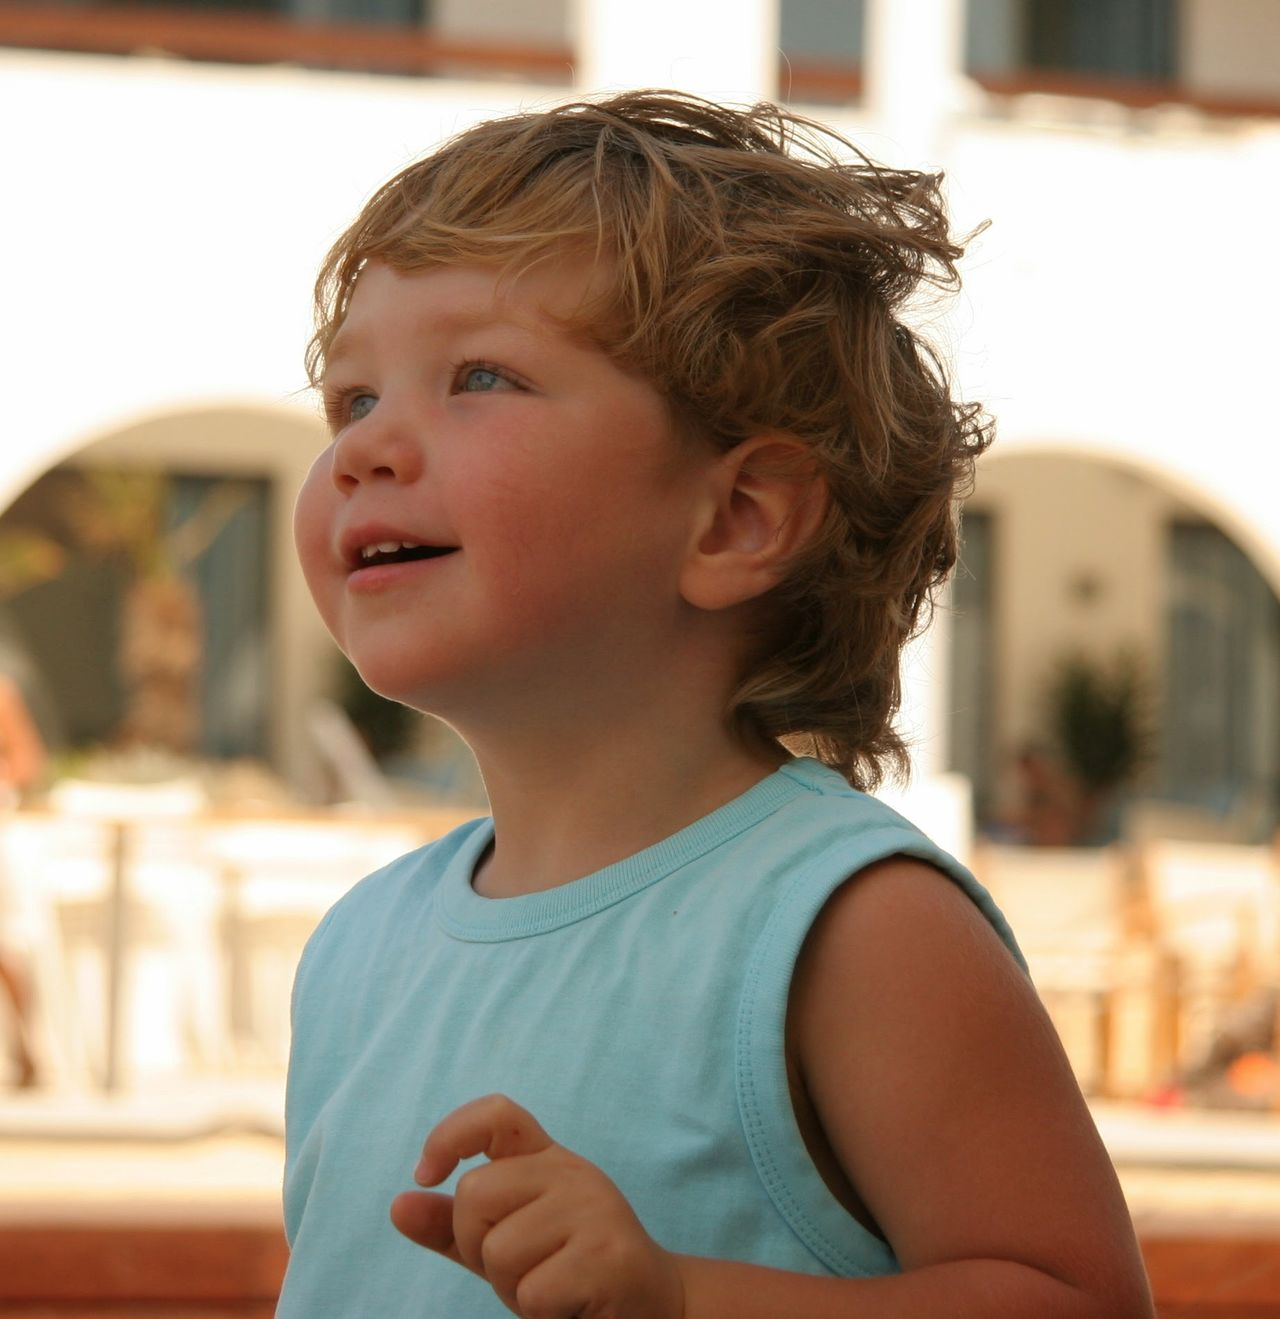 Blond Hair Blue Eyes Casual Clothing Child Childhood Children Only Close-up Day Enjoying Life Focus On Foreground Gaze Happiness Headshot Joy Life Looking Into The Future Lookingup One Person Outdoors People Real People Serenity Smiling Summertime Suntan EyeEmNewHere